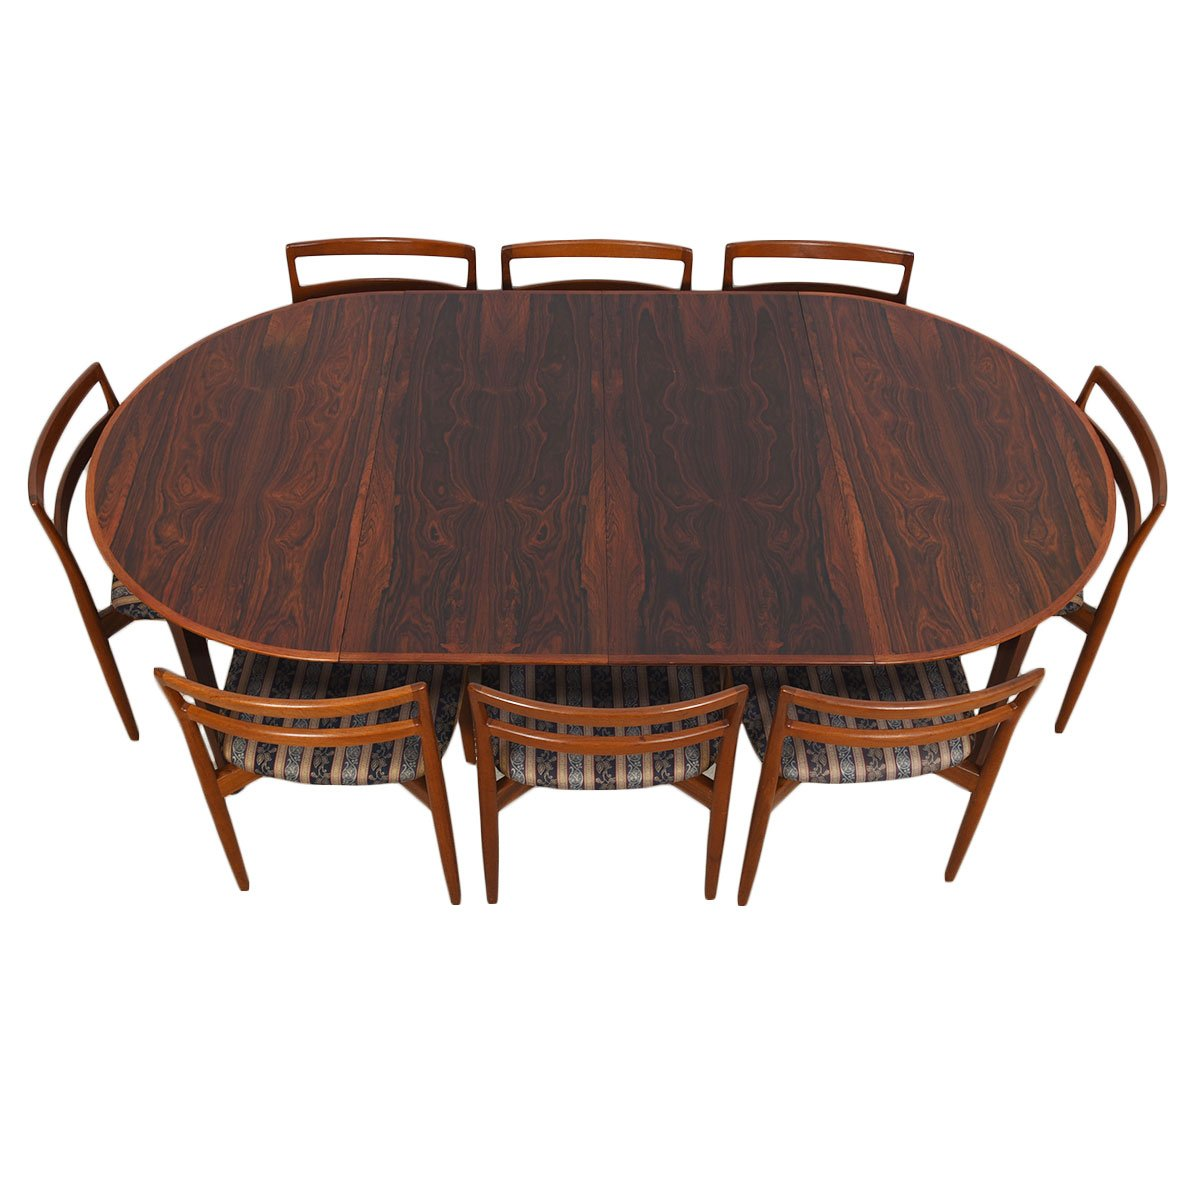 'Old-School' Danish Rosewood Round-to-Oval Expanding Dining Table